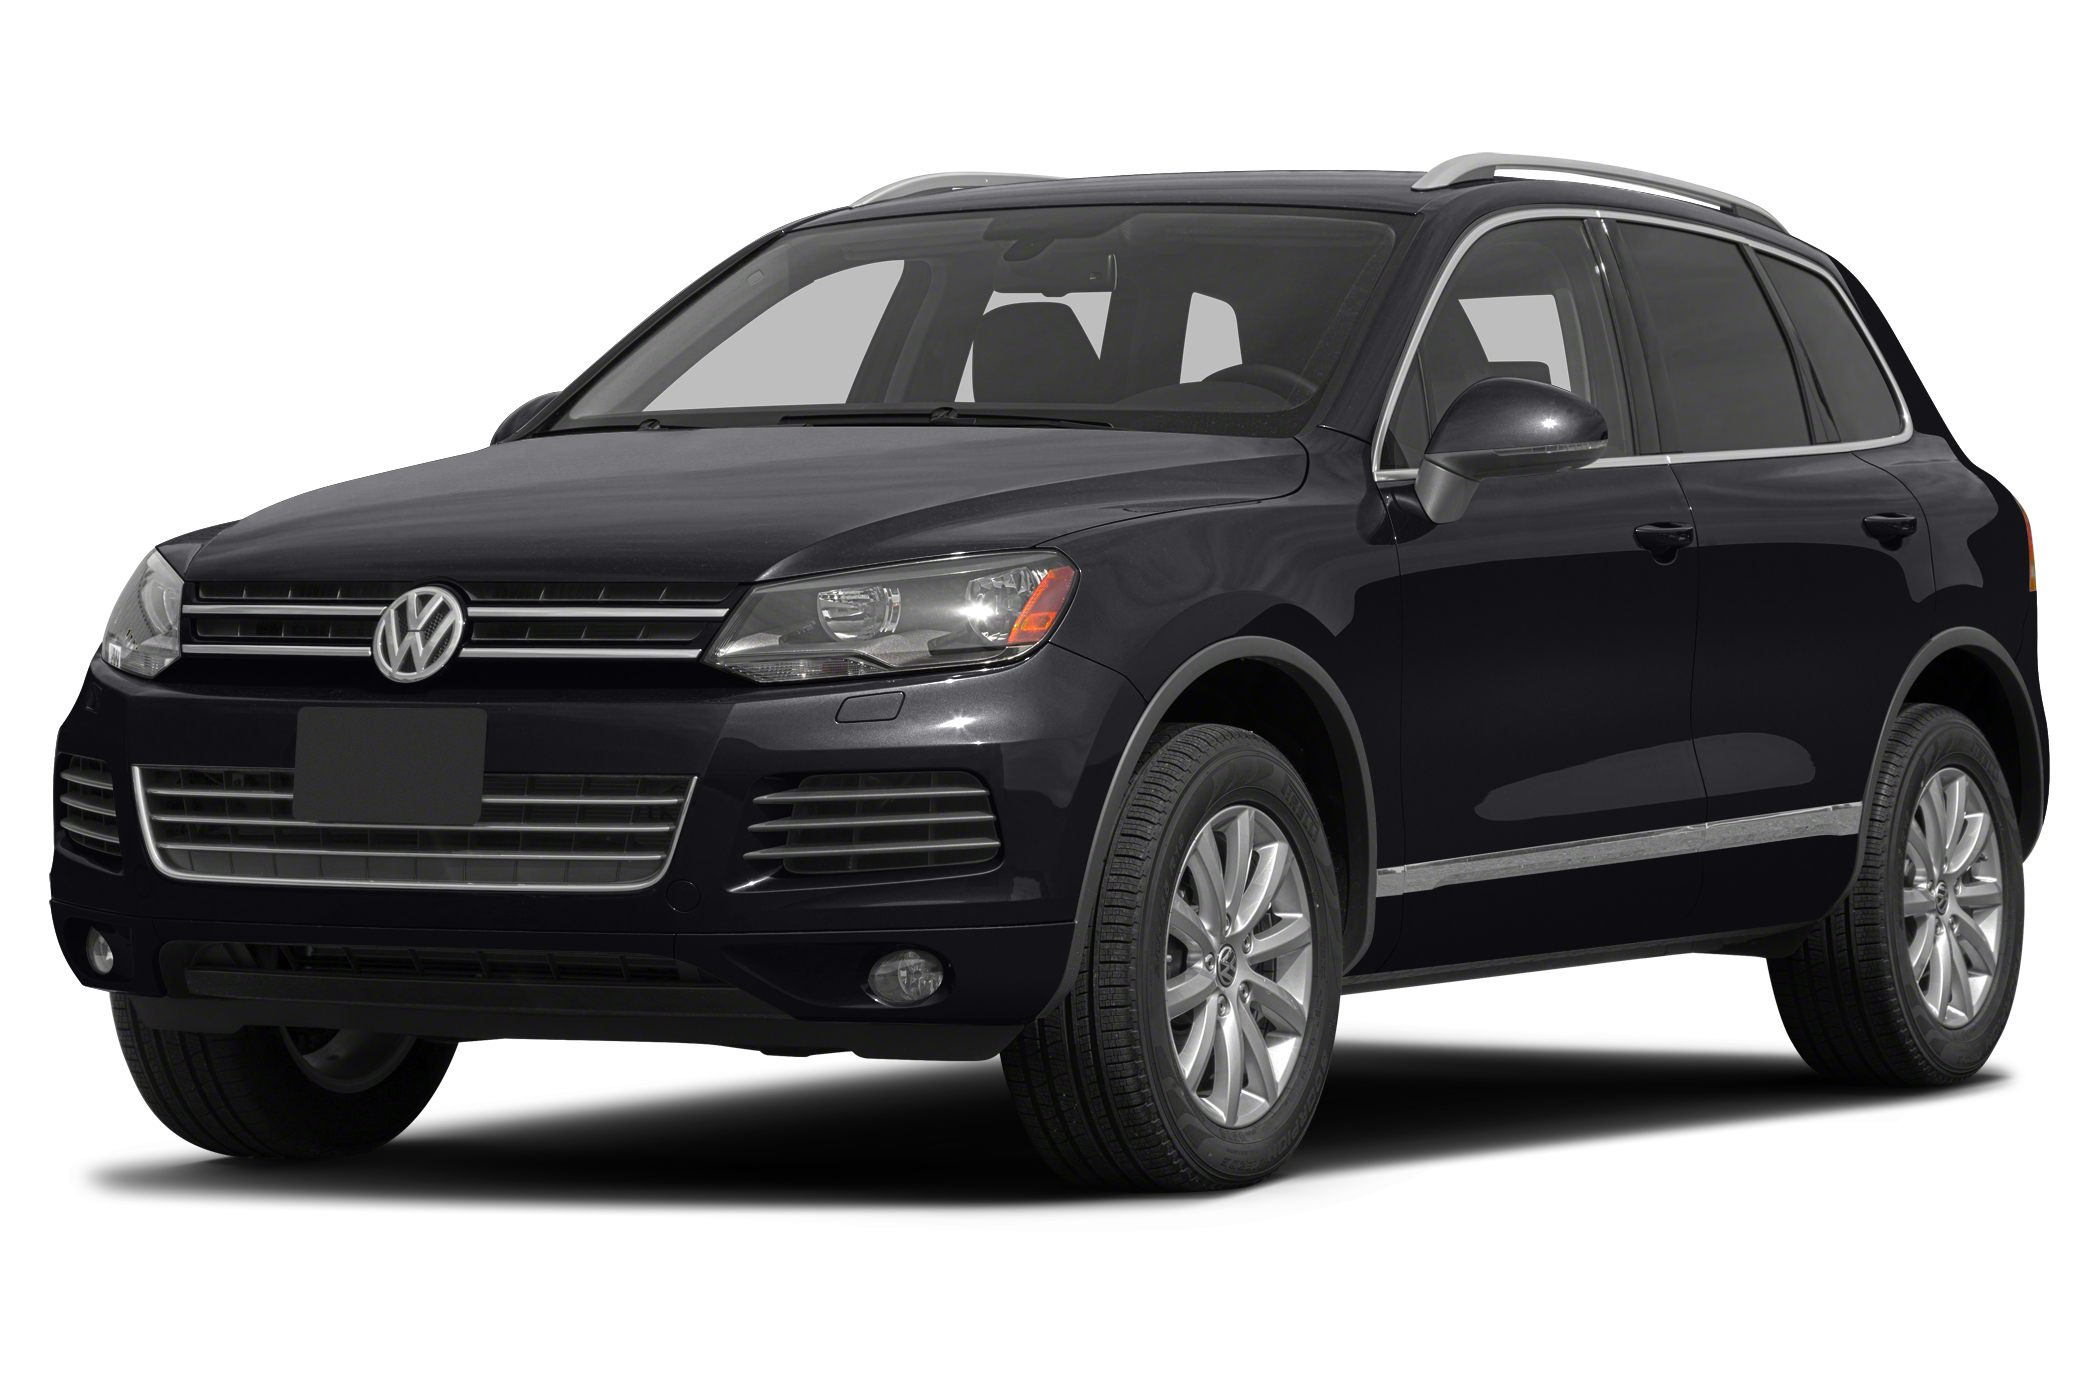 2013 Volkswagen Touareg Vr6 Sport 4dr All Wheel Drive 4motion Specs And Prices